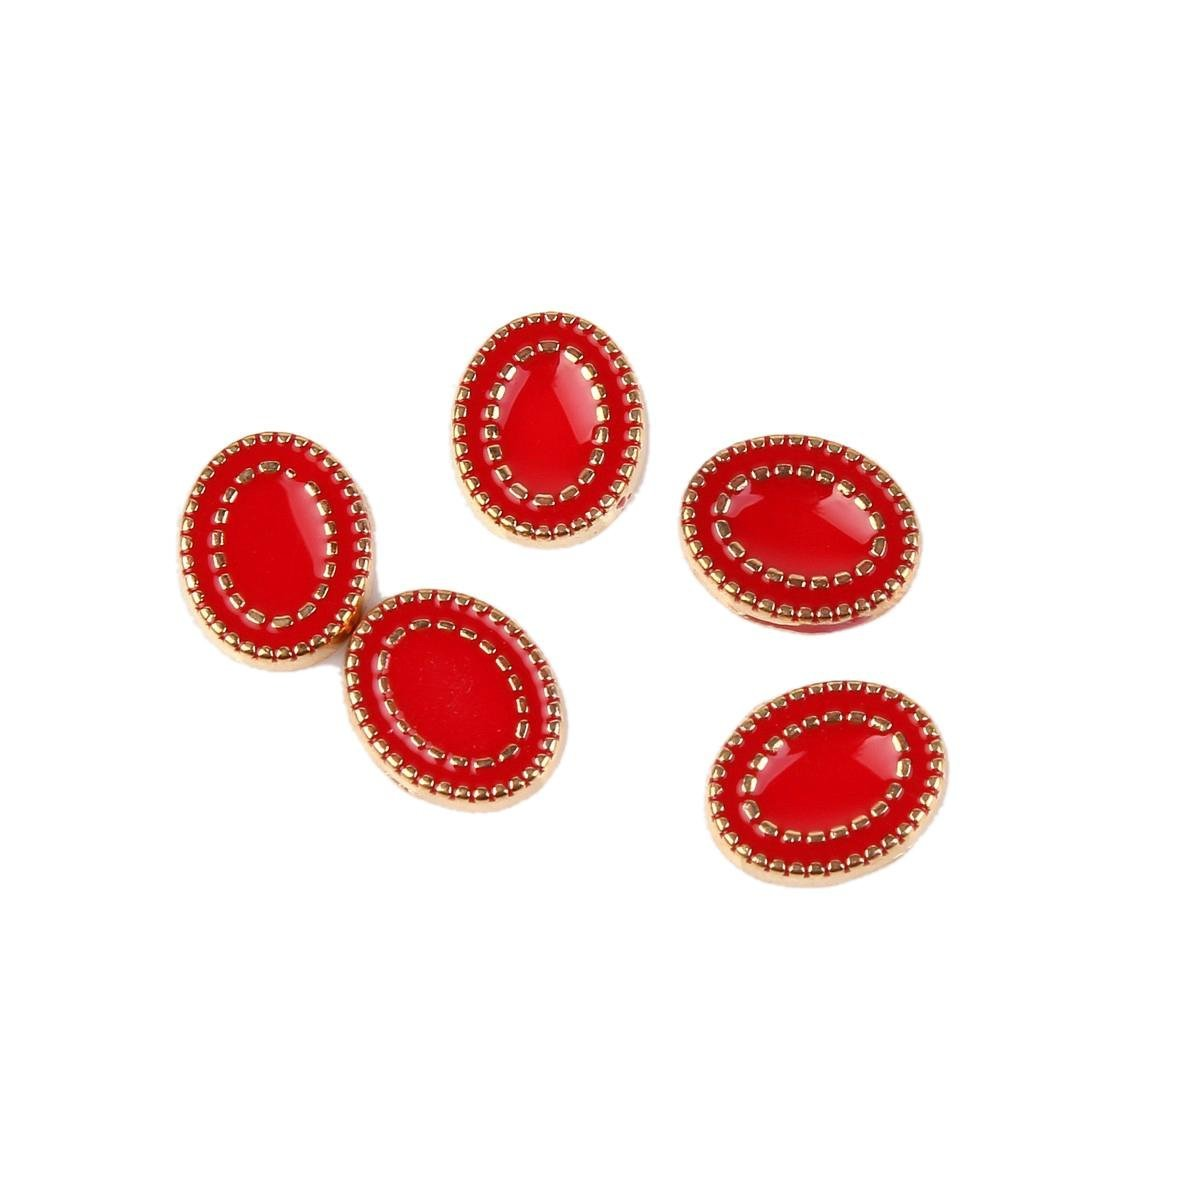 Buy Rain Queen Retro Oval Nails Designed Red 3d Nail Art Studs Gold